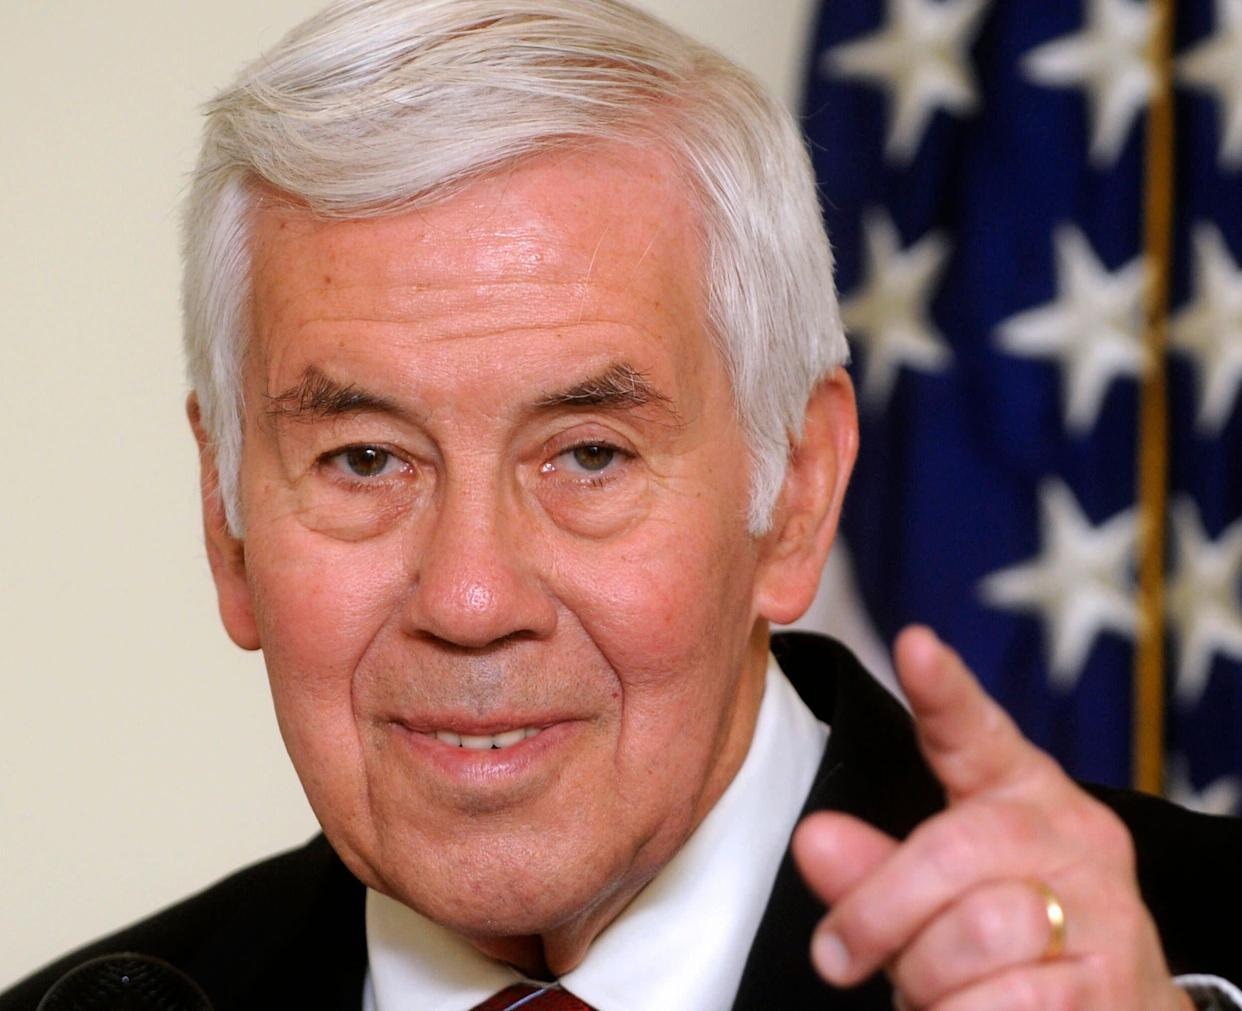 Richard G. Lugar, a six-term senator from Indiana who became one of the foremost voices on U.S. foreign policy, died on April 28, 2019. He was 87.